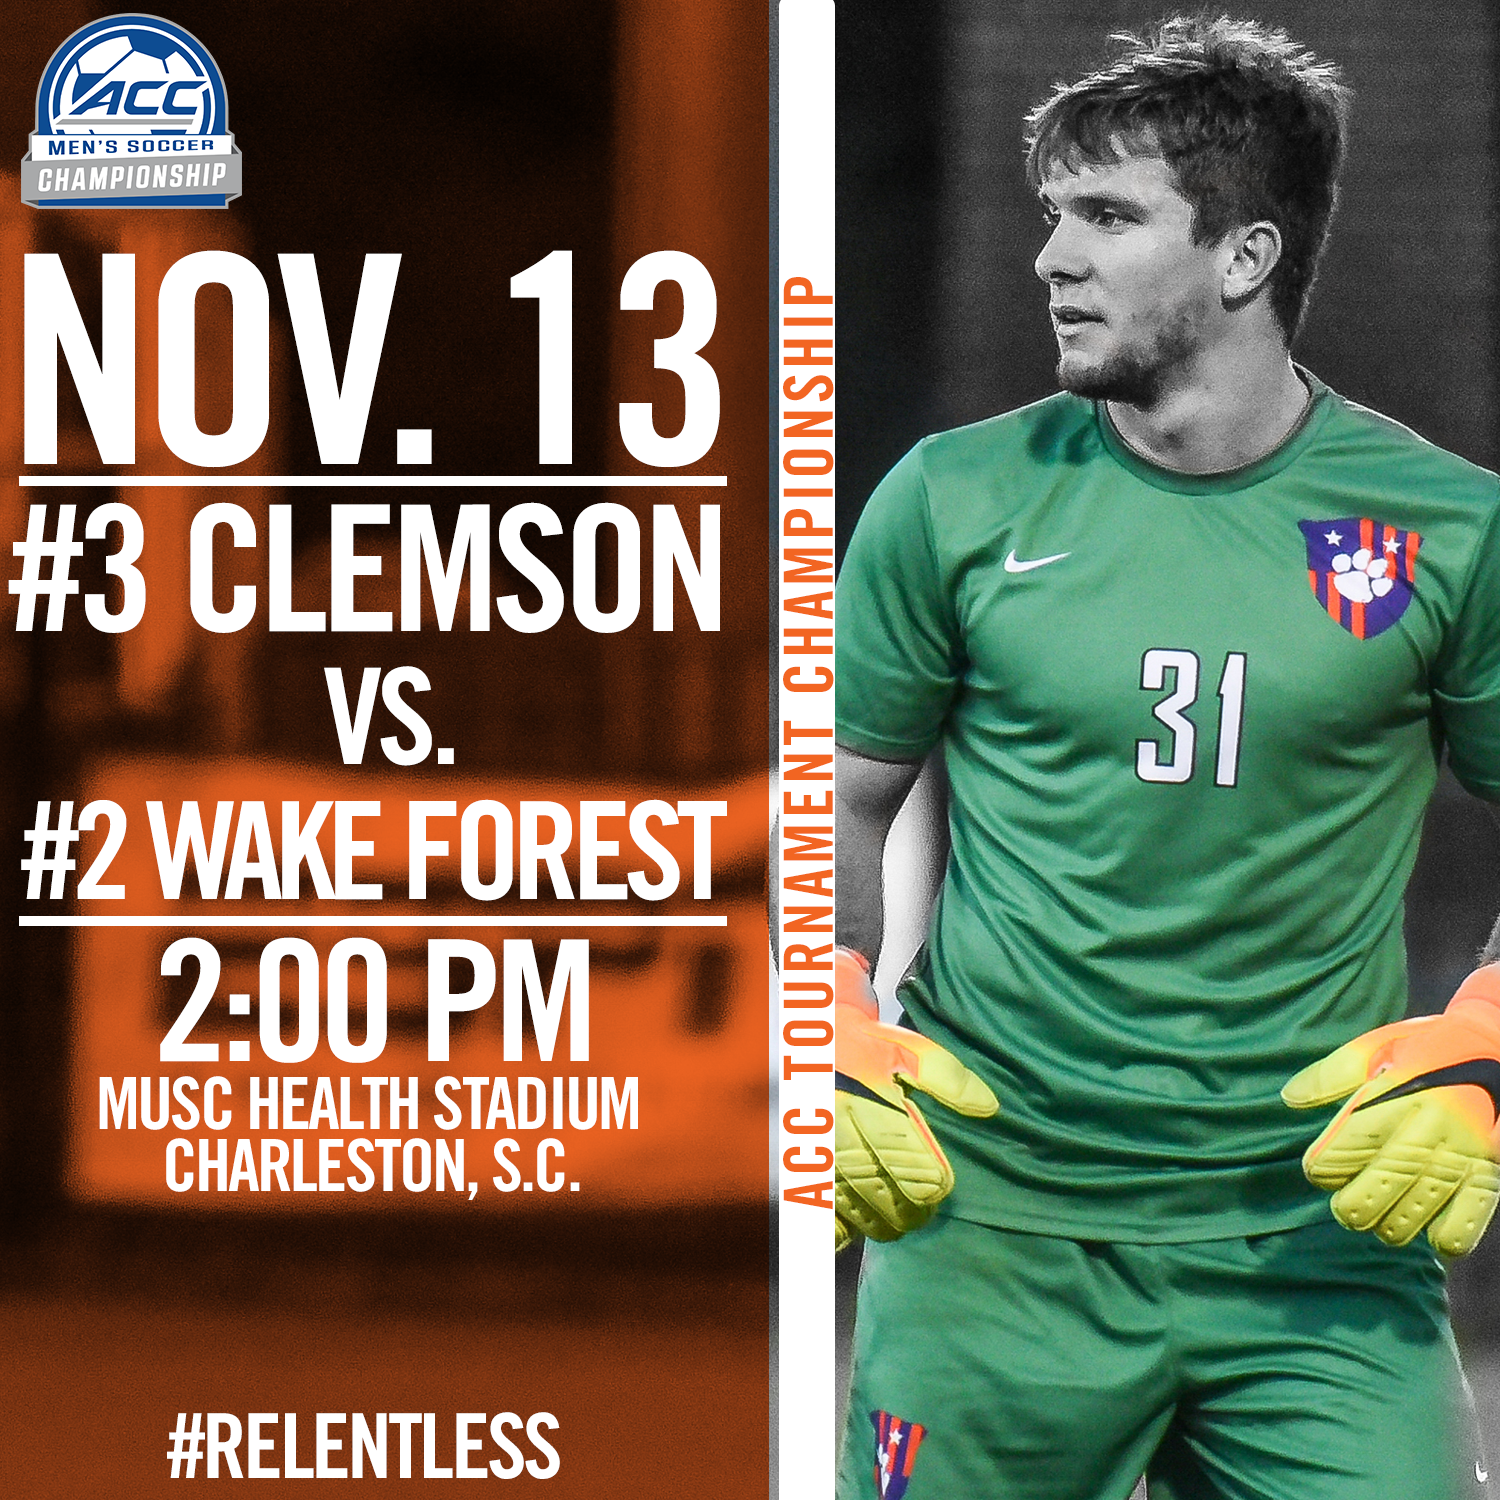 No. 3 Clemson Takes on No. 2 Wake Forest in ACC Championship Sunday in Charleston